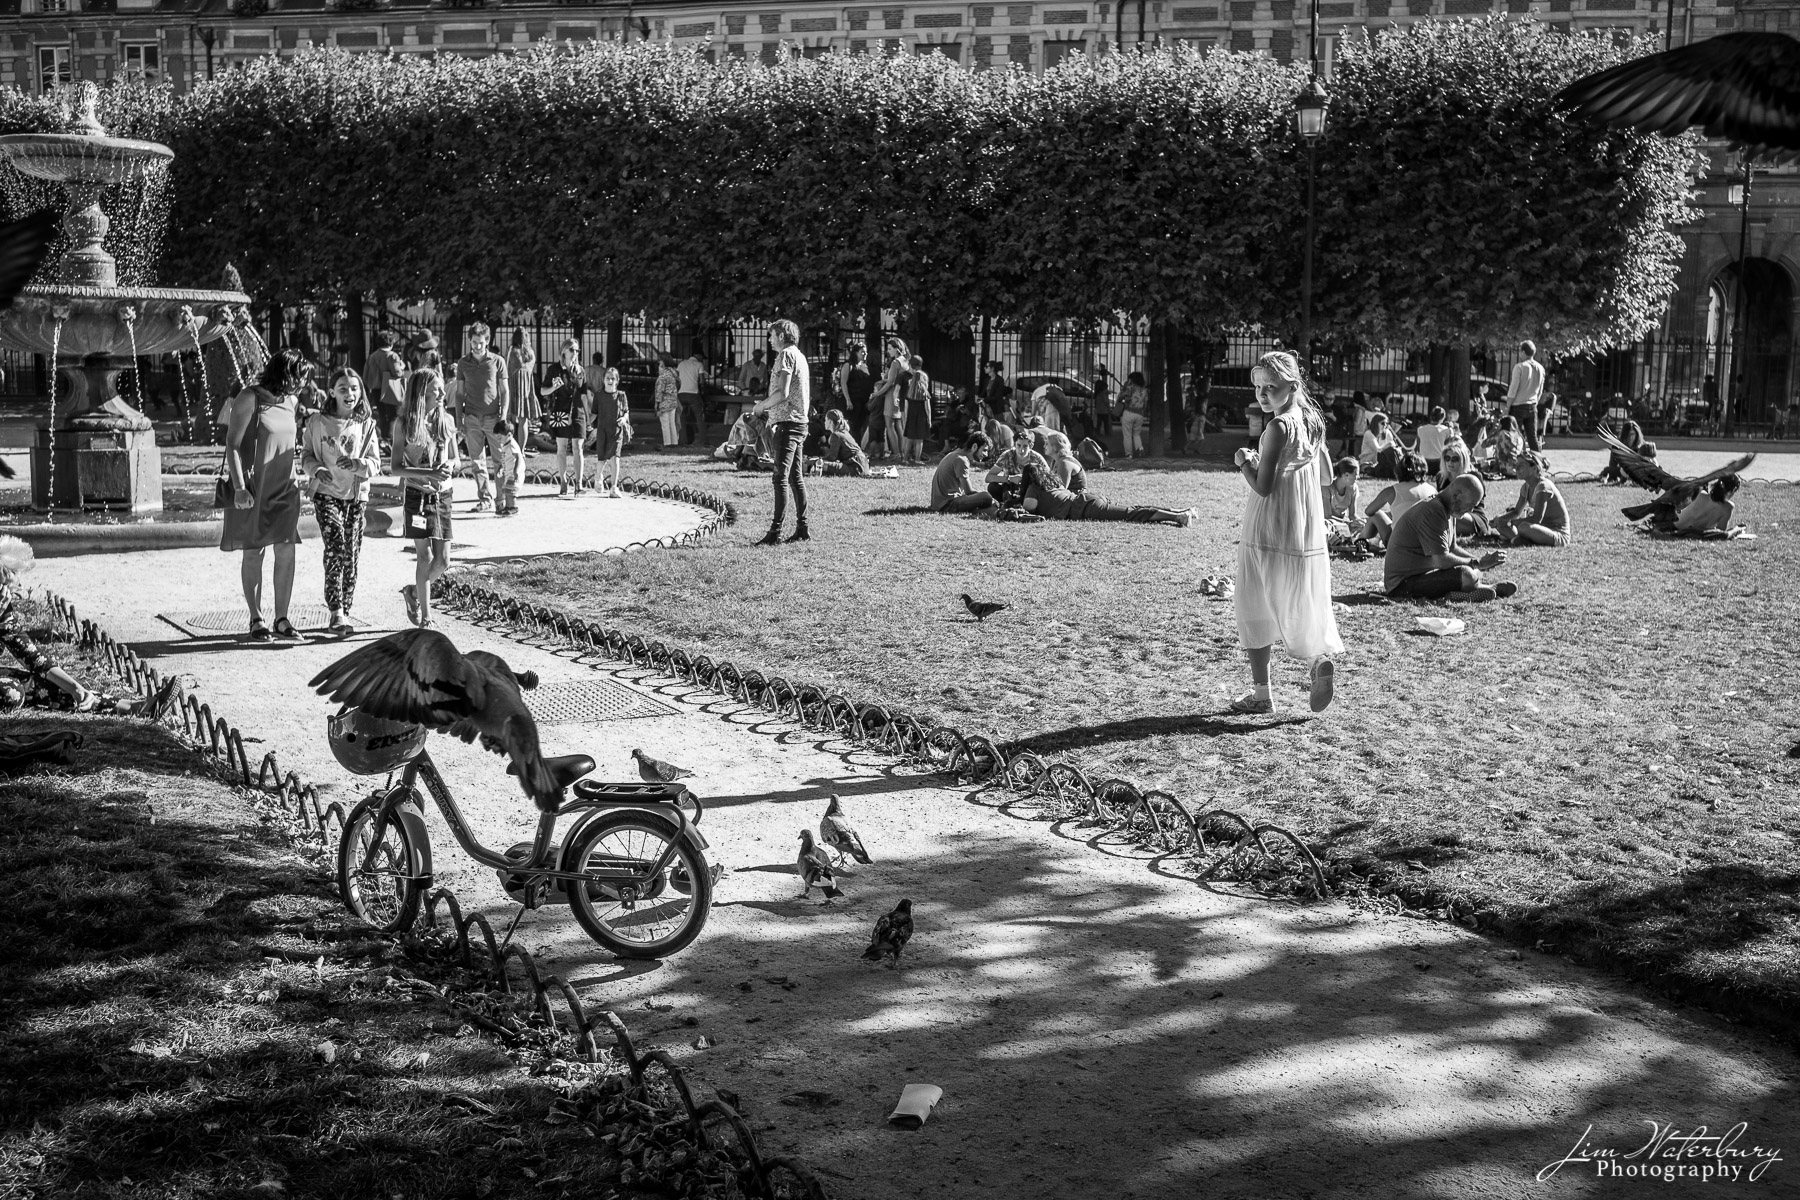 A young girl checks on her bicycle, now encircled by a group of pigeons.  Place des Vosges, Paris. Black & white.